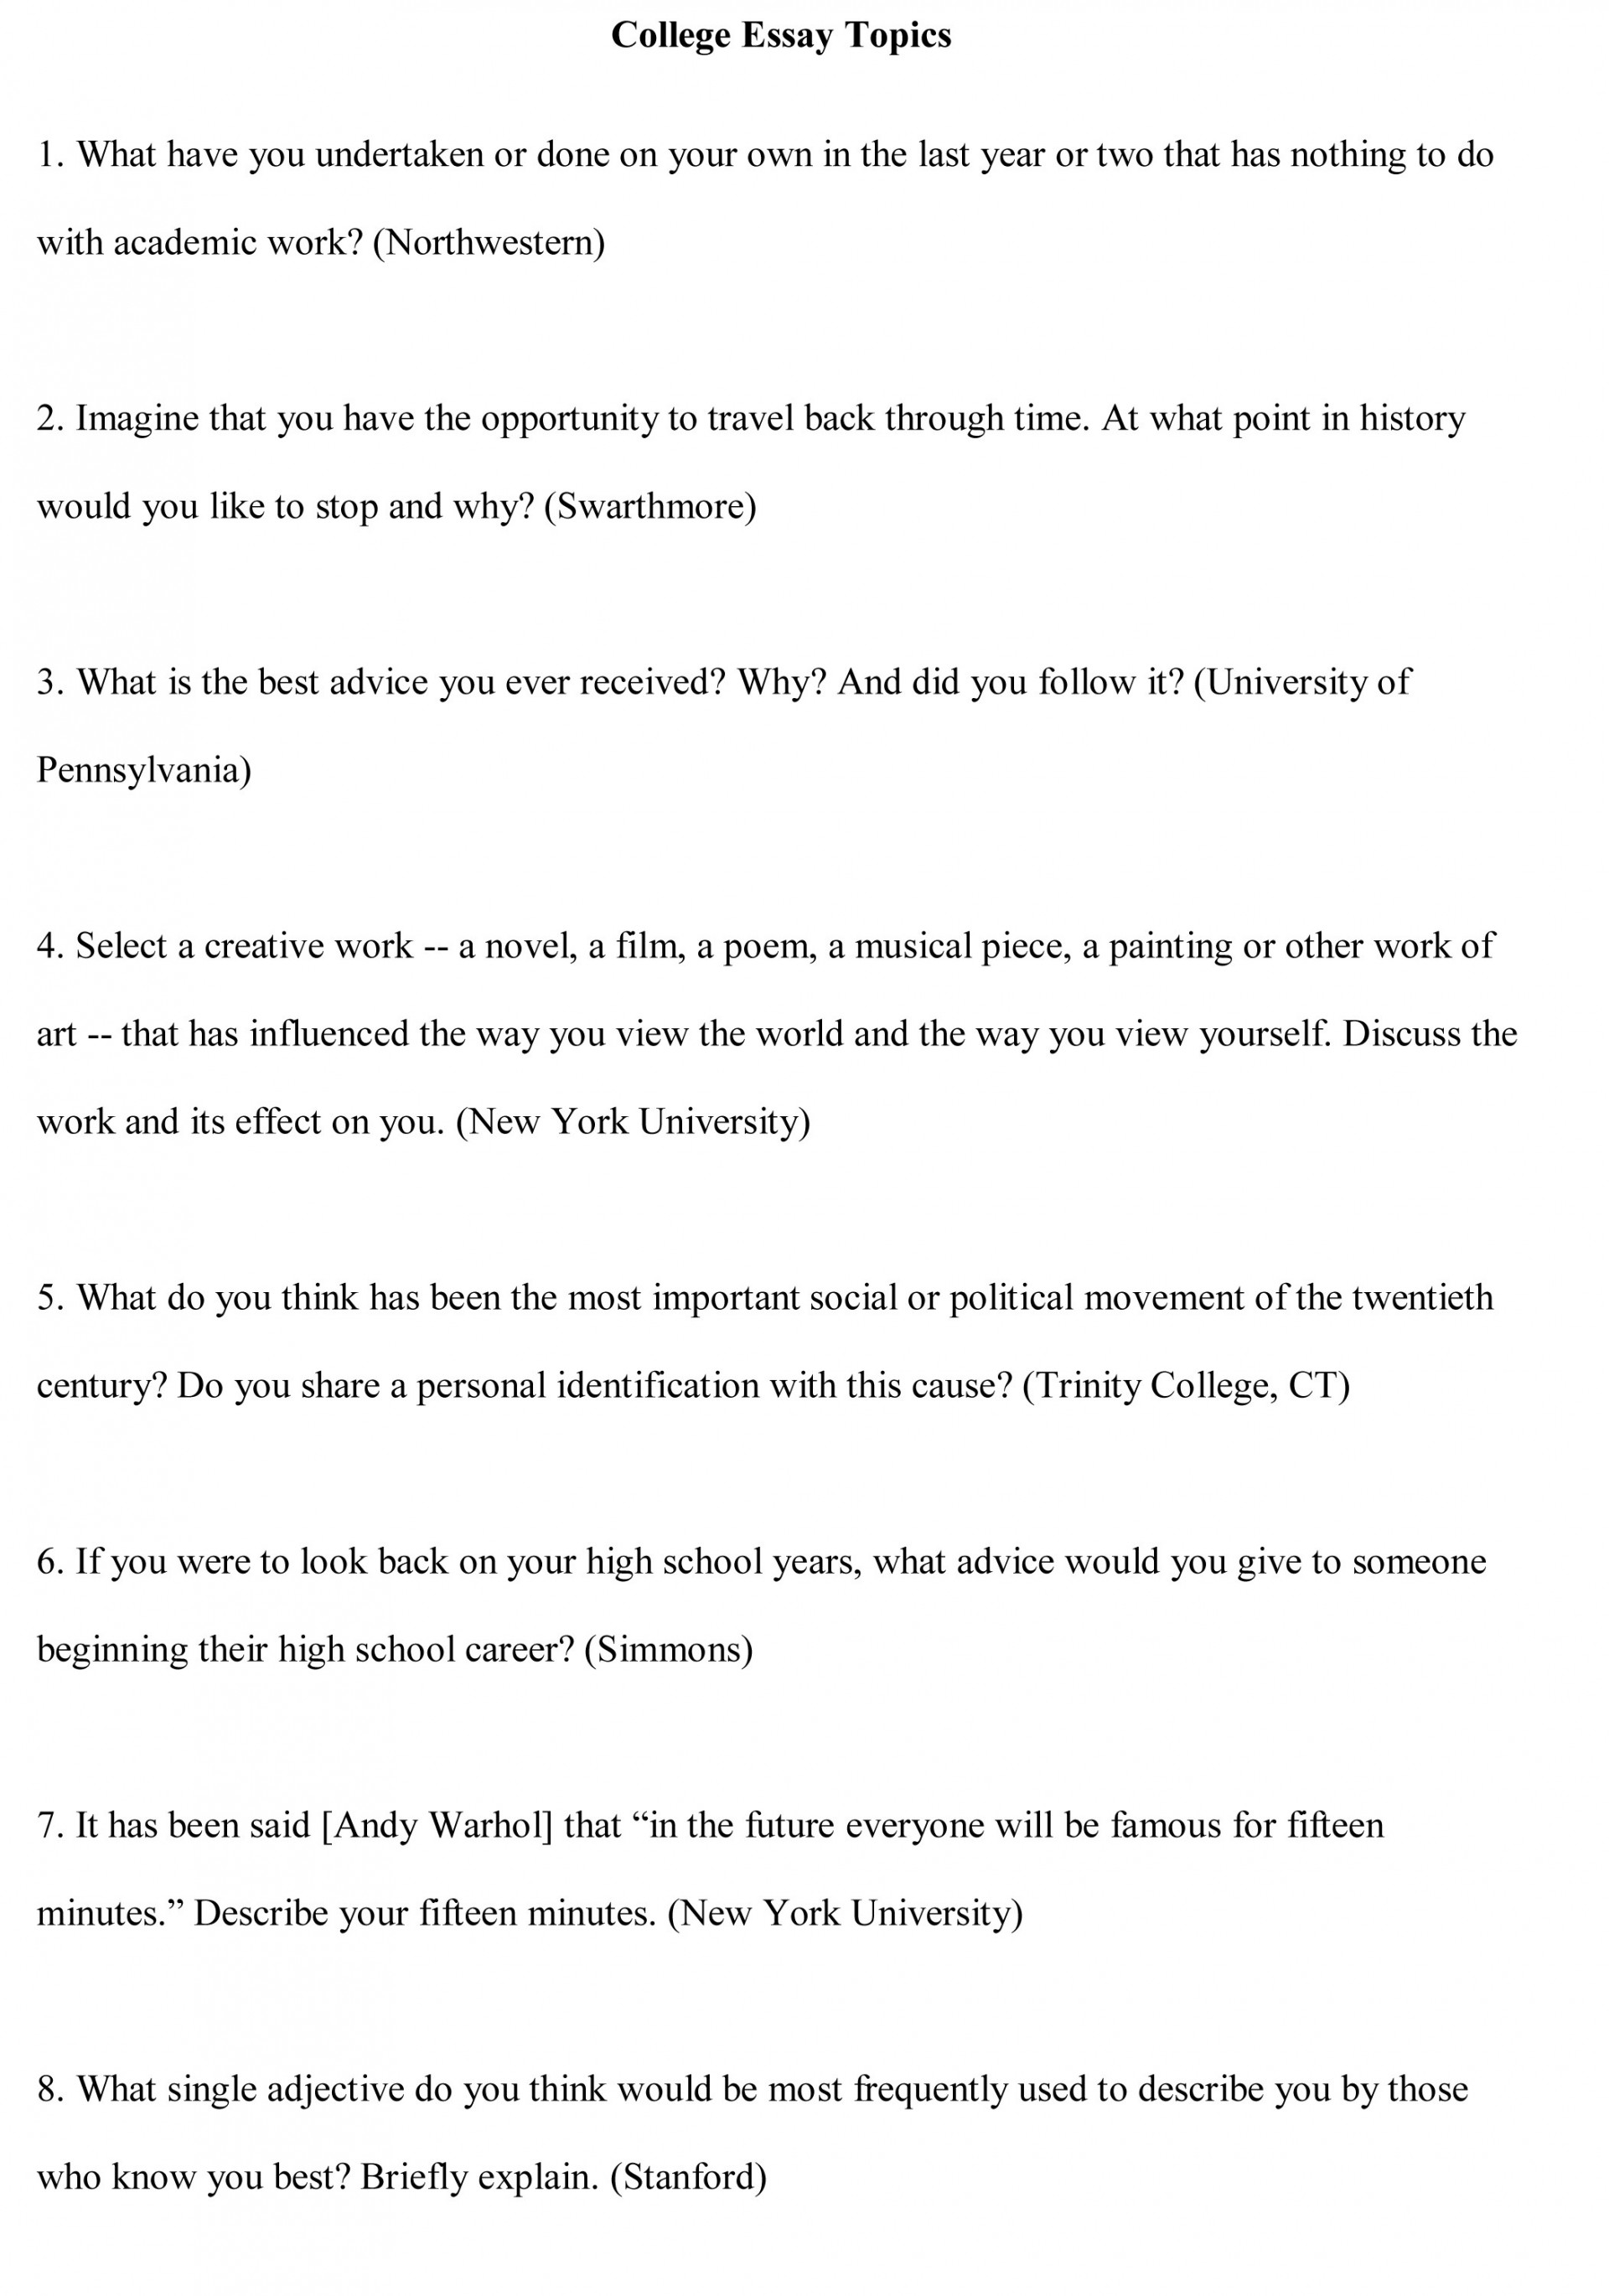 002 Essay Example Questions Examples College Topics Free Beautiful Exam Extended Response Question Cma 1920